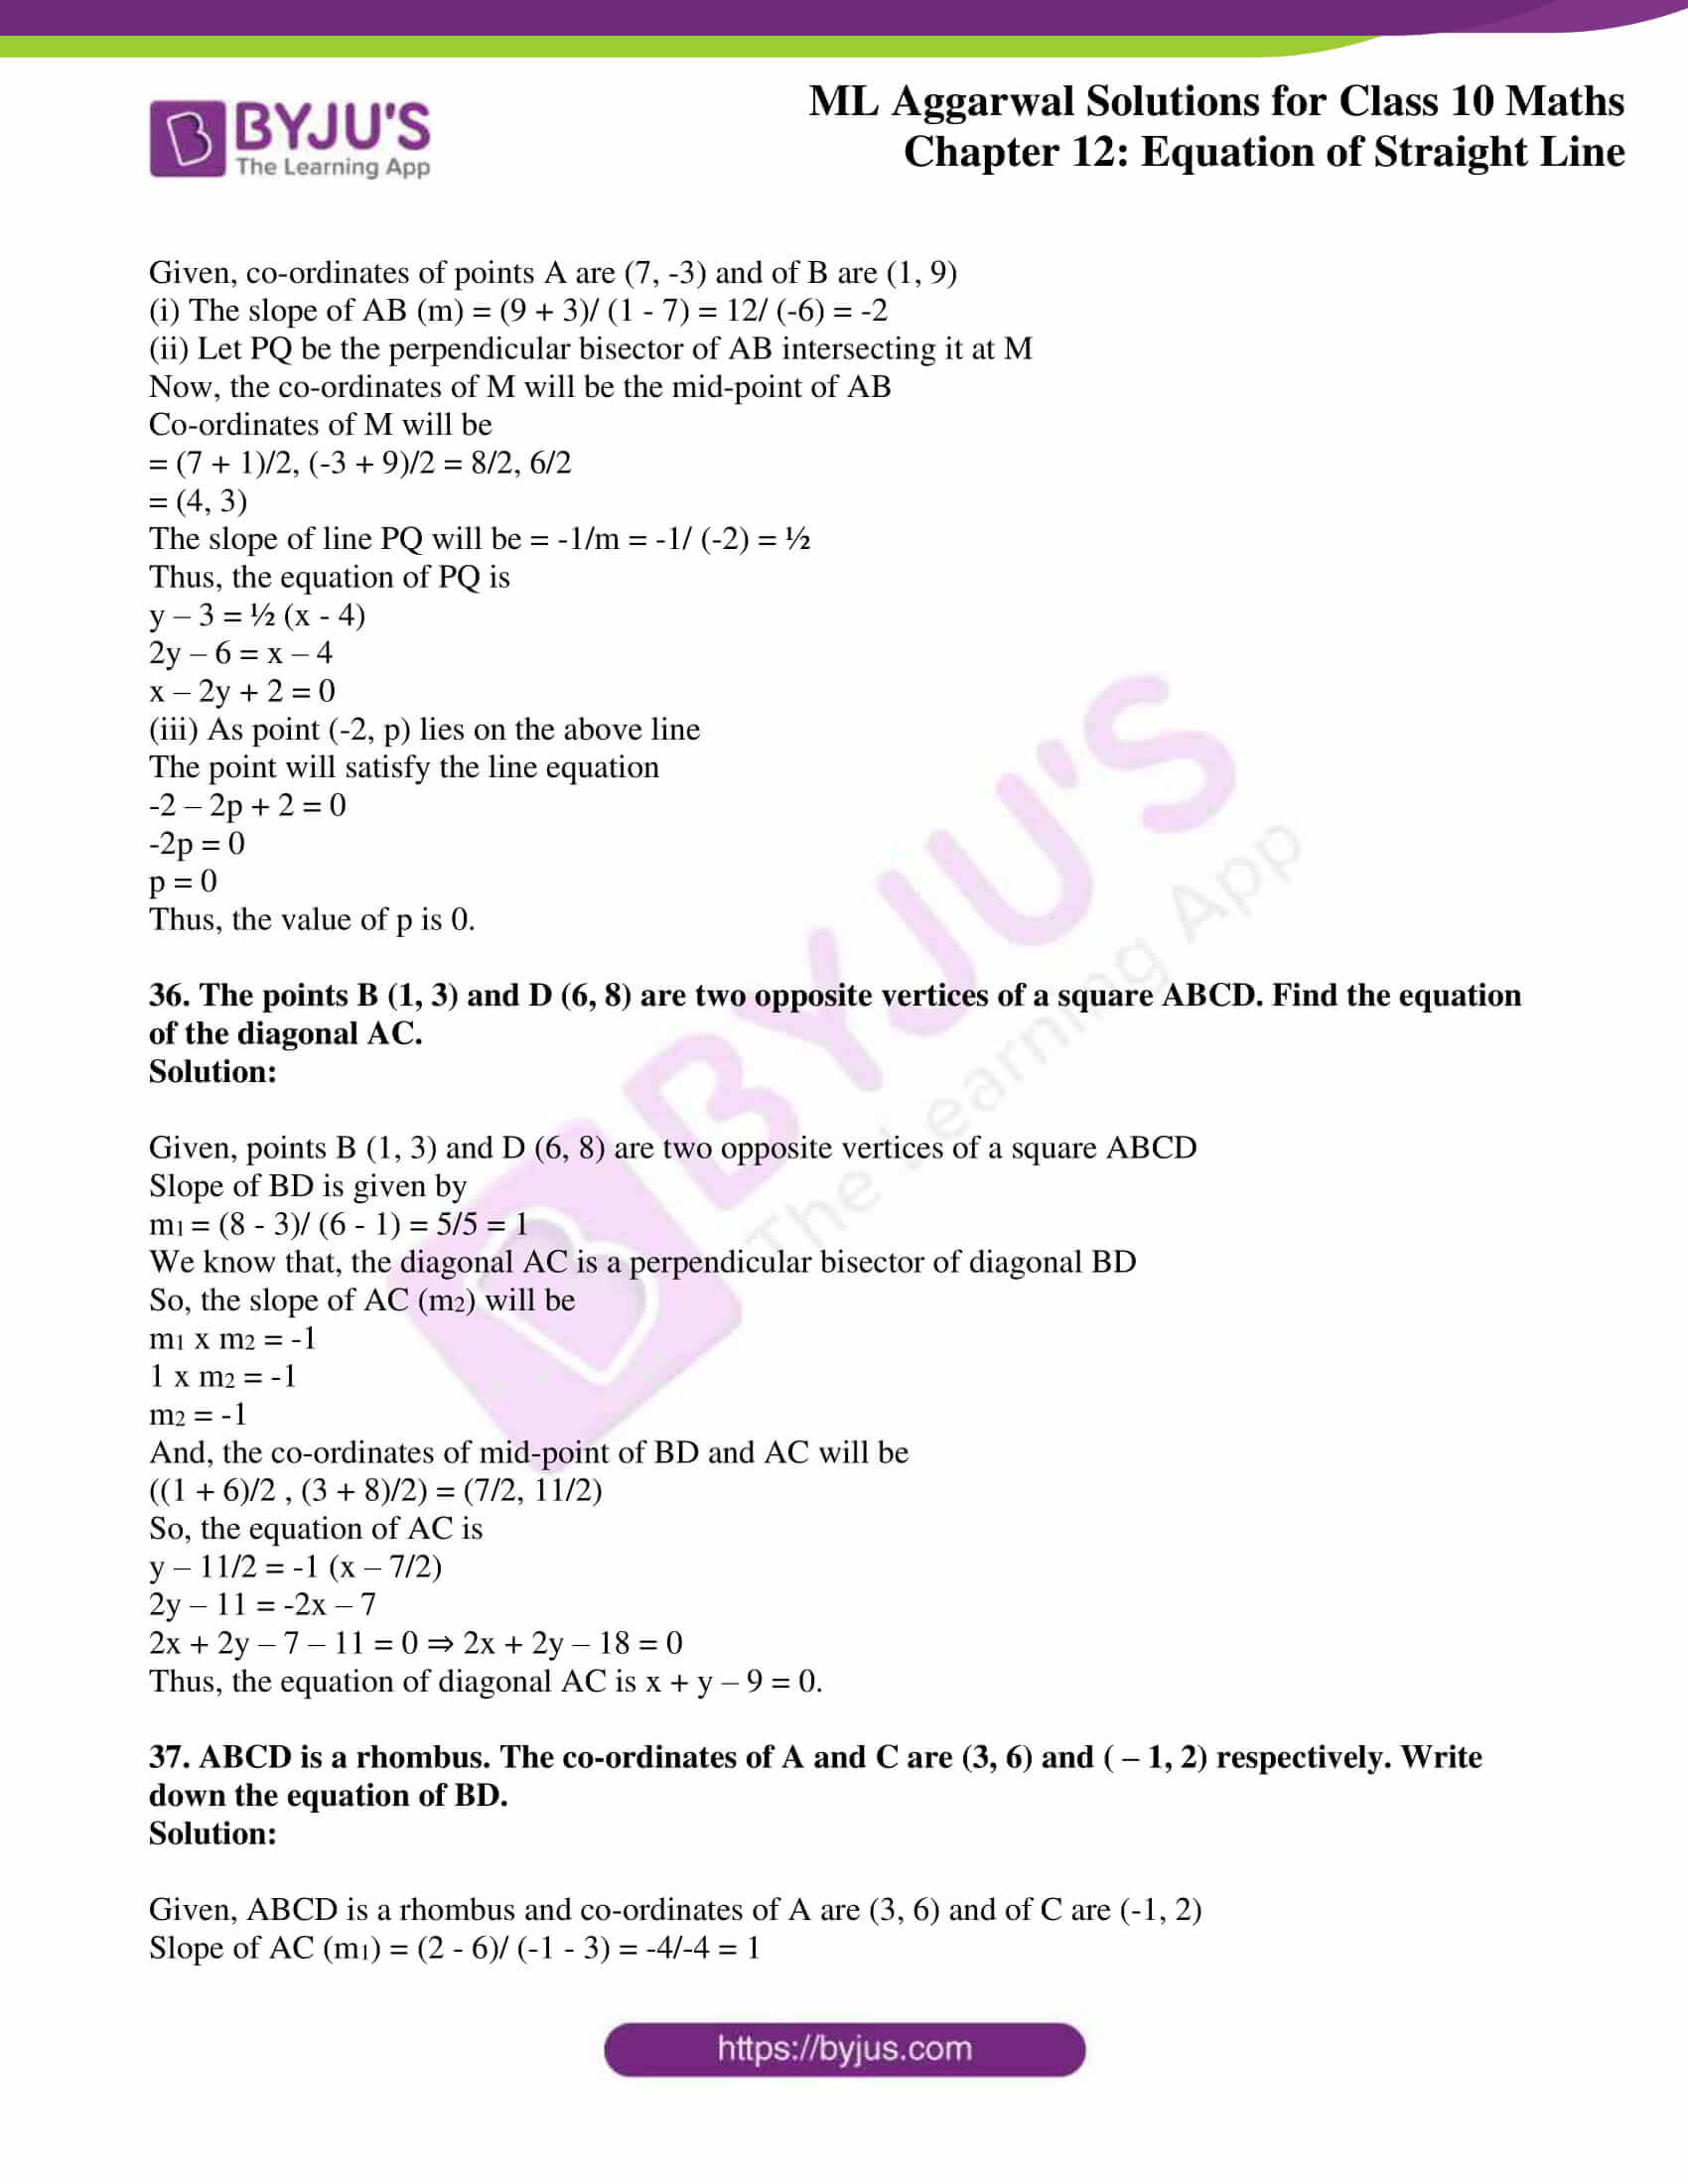 ml aggarwal solutions for class 10 maths chapter 12 30